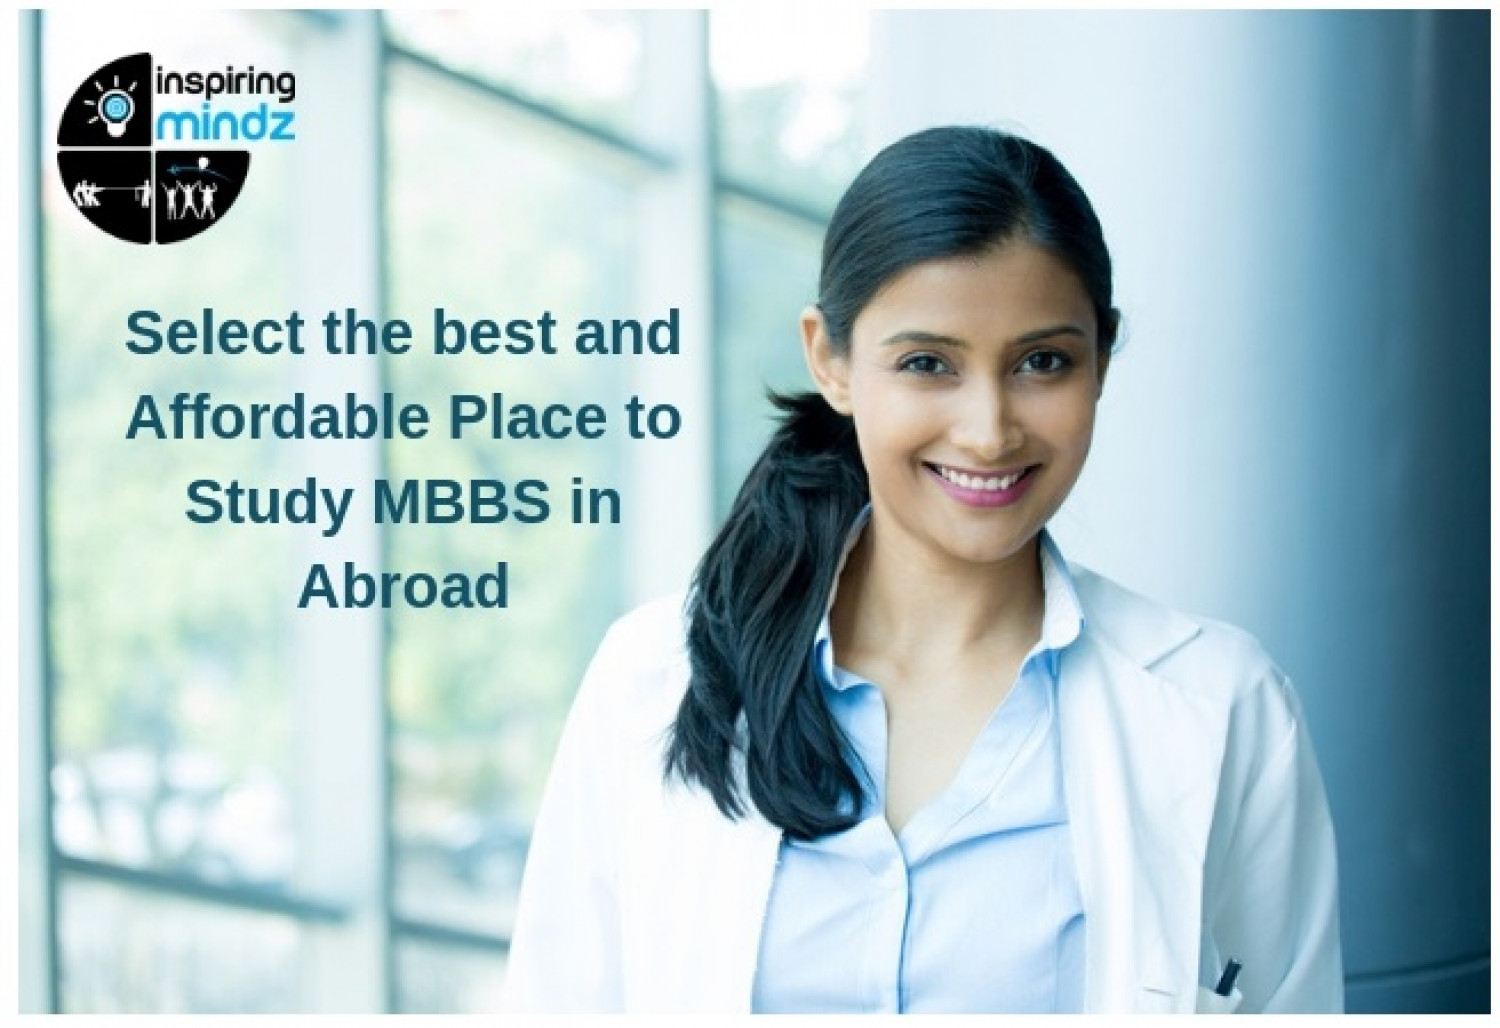 Select the best and Affordable Place to Study MBBS in Abroad Infographic